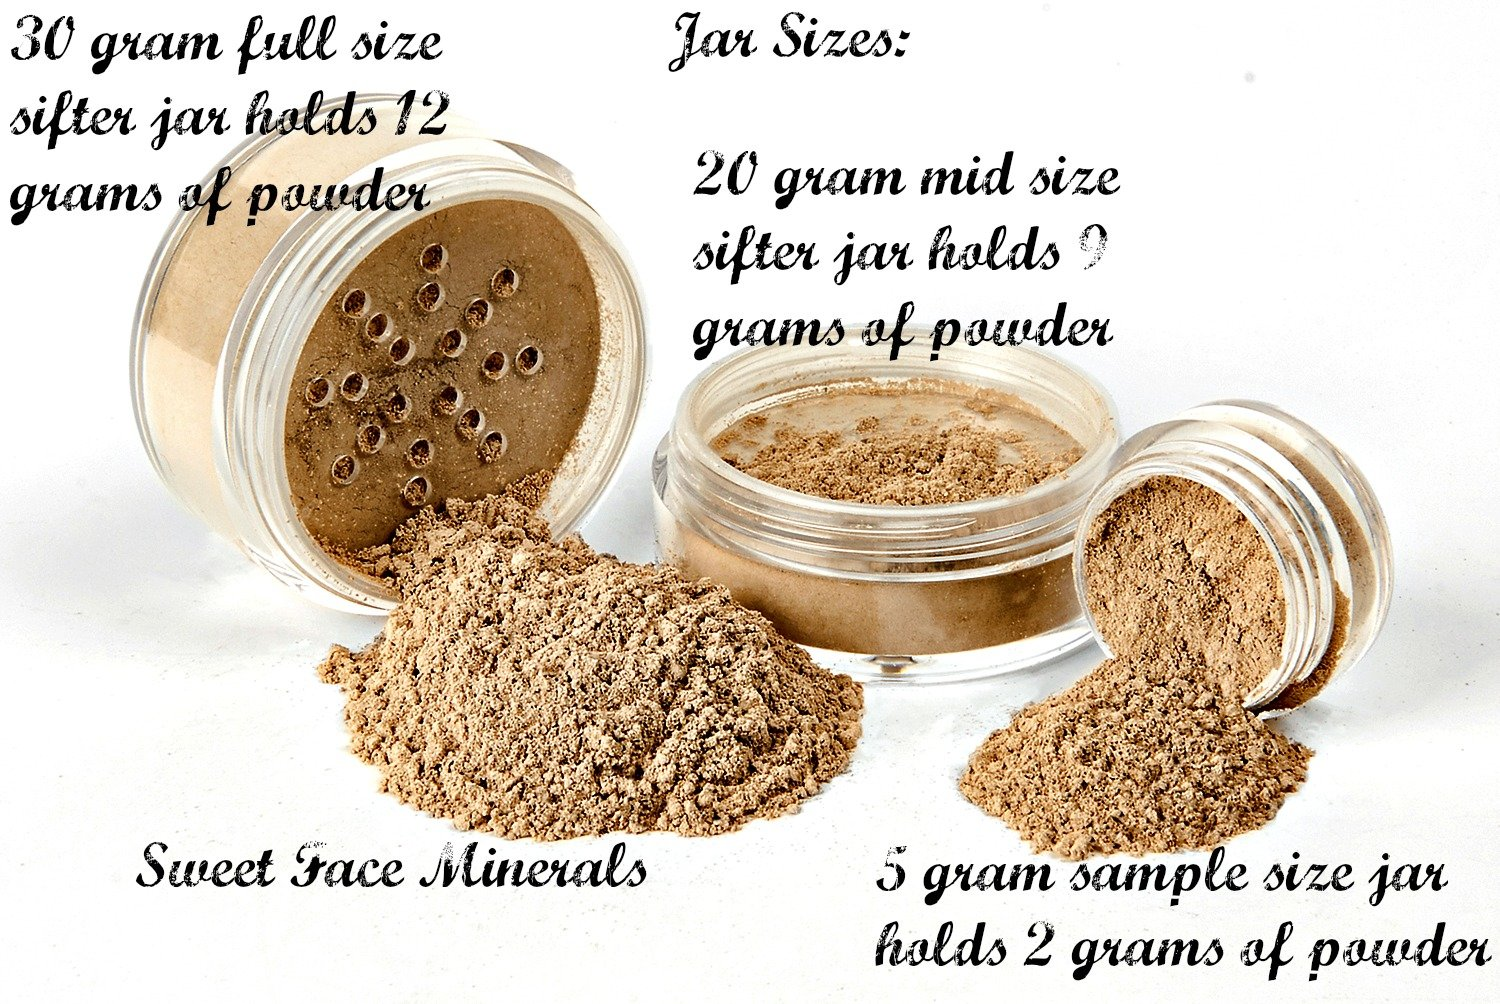 BLACK & BROWN EYE LINER w/BRUSH KIT Mineral Makeup Shadow Bare Skin Brow Powder Set by Sweet Face Minerals (Image #2)